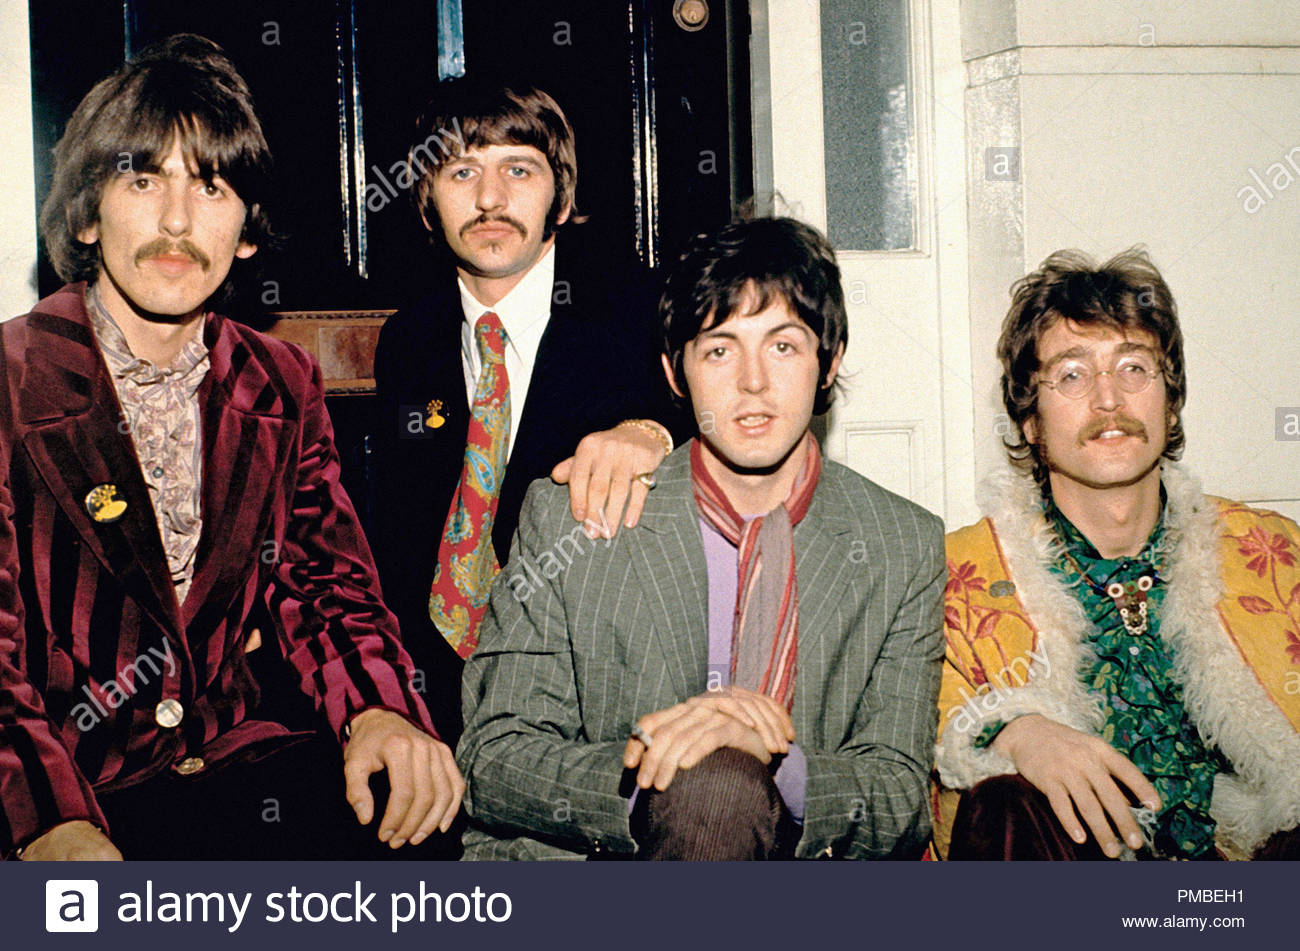 Publicity photo of The Beatles (George Harrison, Ringo Starr, Paul McCartney and John Lennon) at Abbey Road Studios, (1967)  File Reference # 33371_713THA - Stock Image